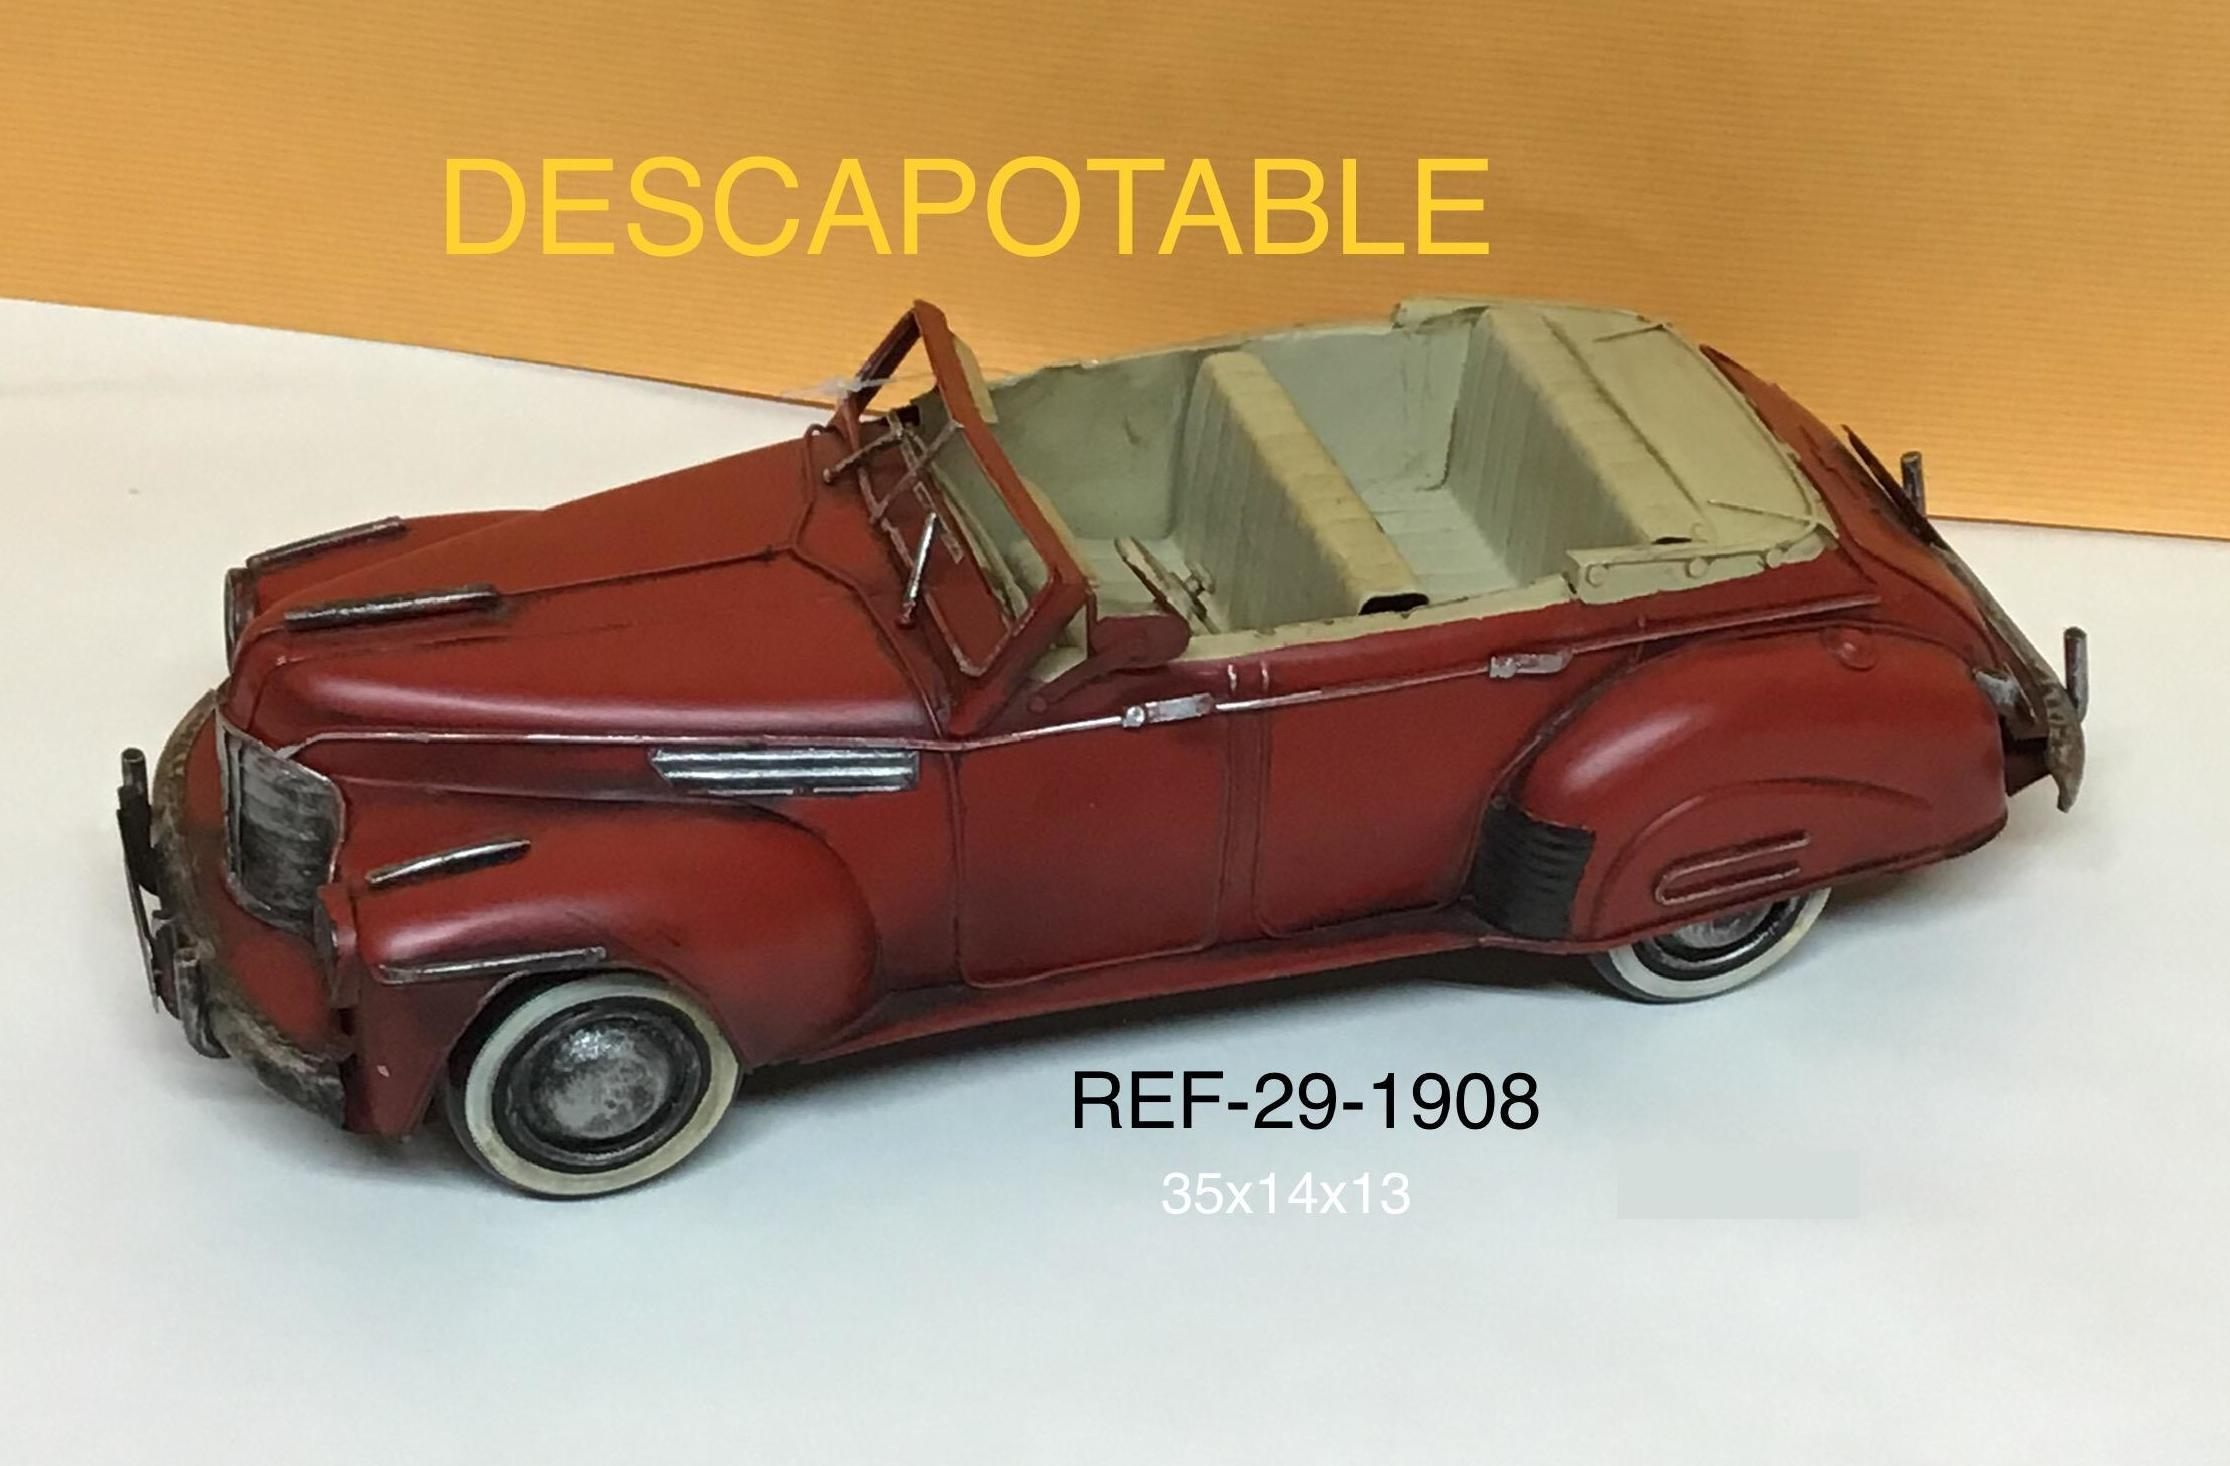 COCHE METAL DESCAPOTABLE ROJO 35X14X13